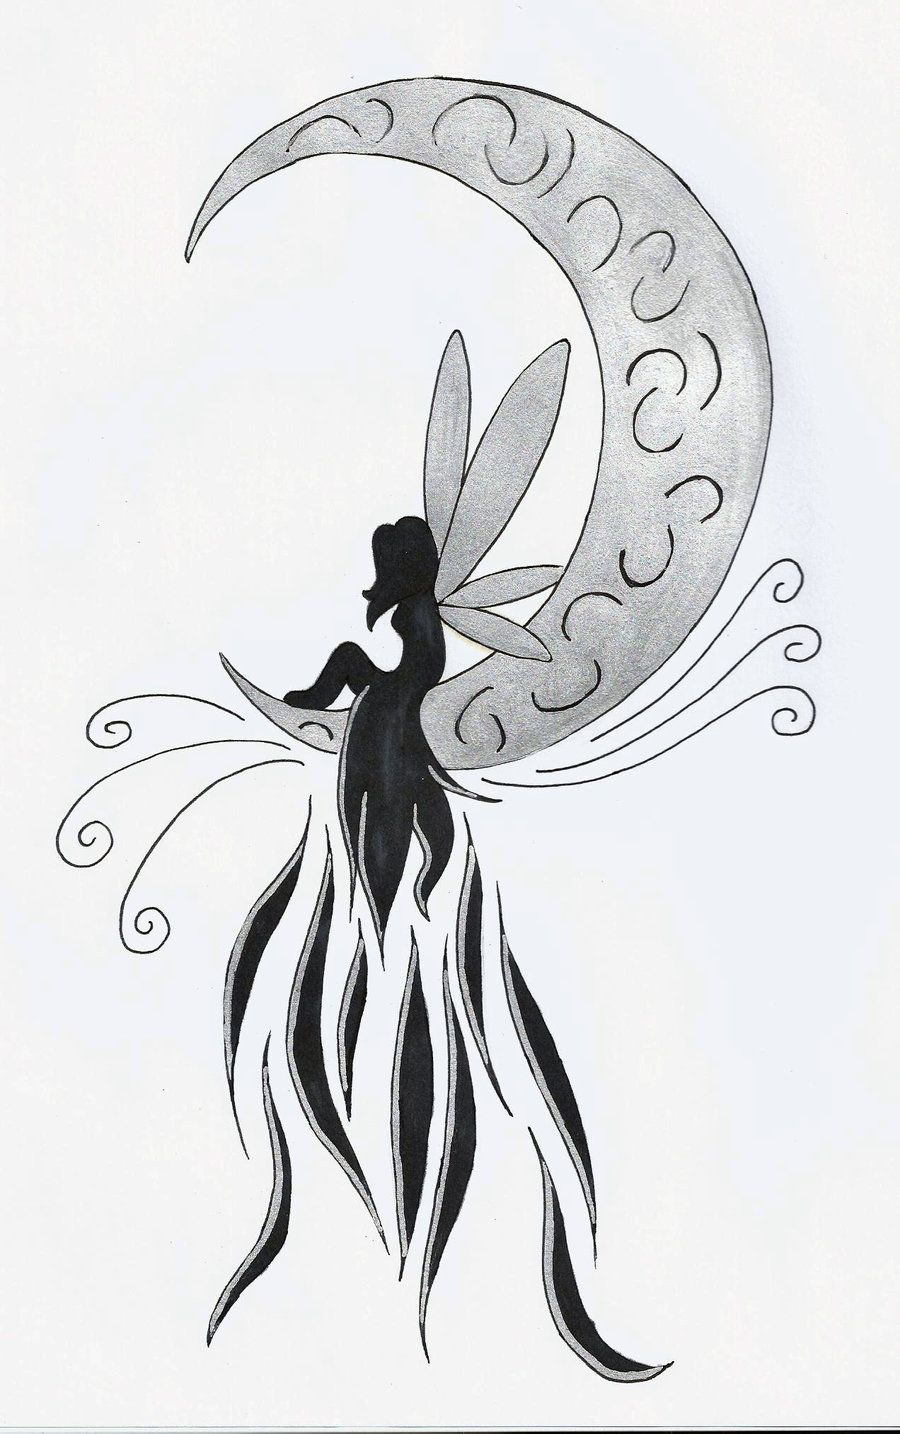 Tattoo Stencils Printable Moon: Fairies Sitting On A Moon Tattoos - Google Search